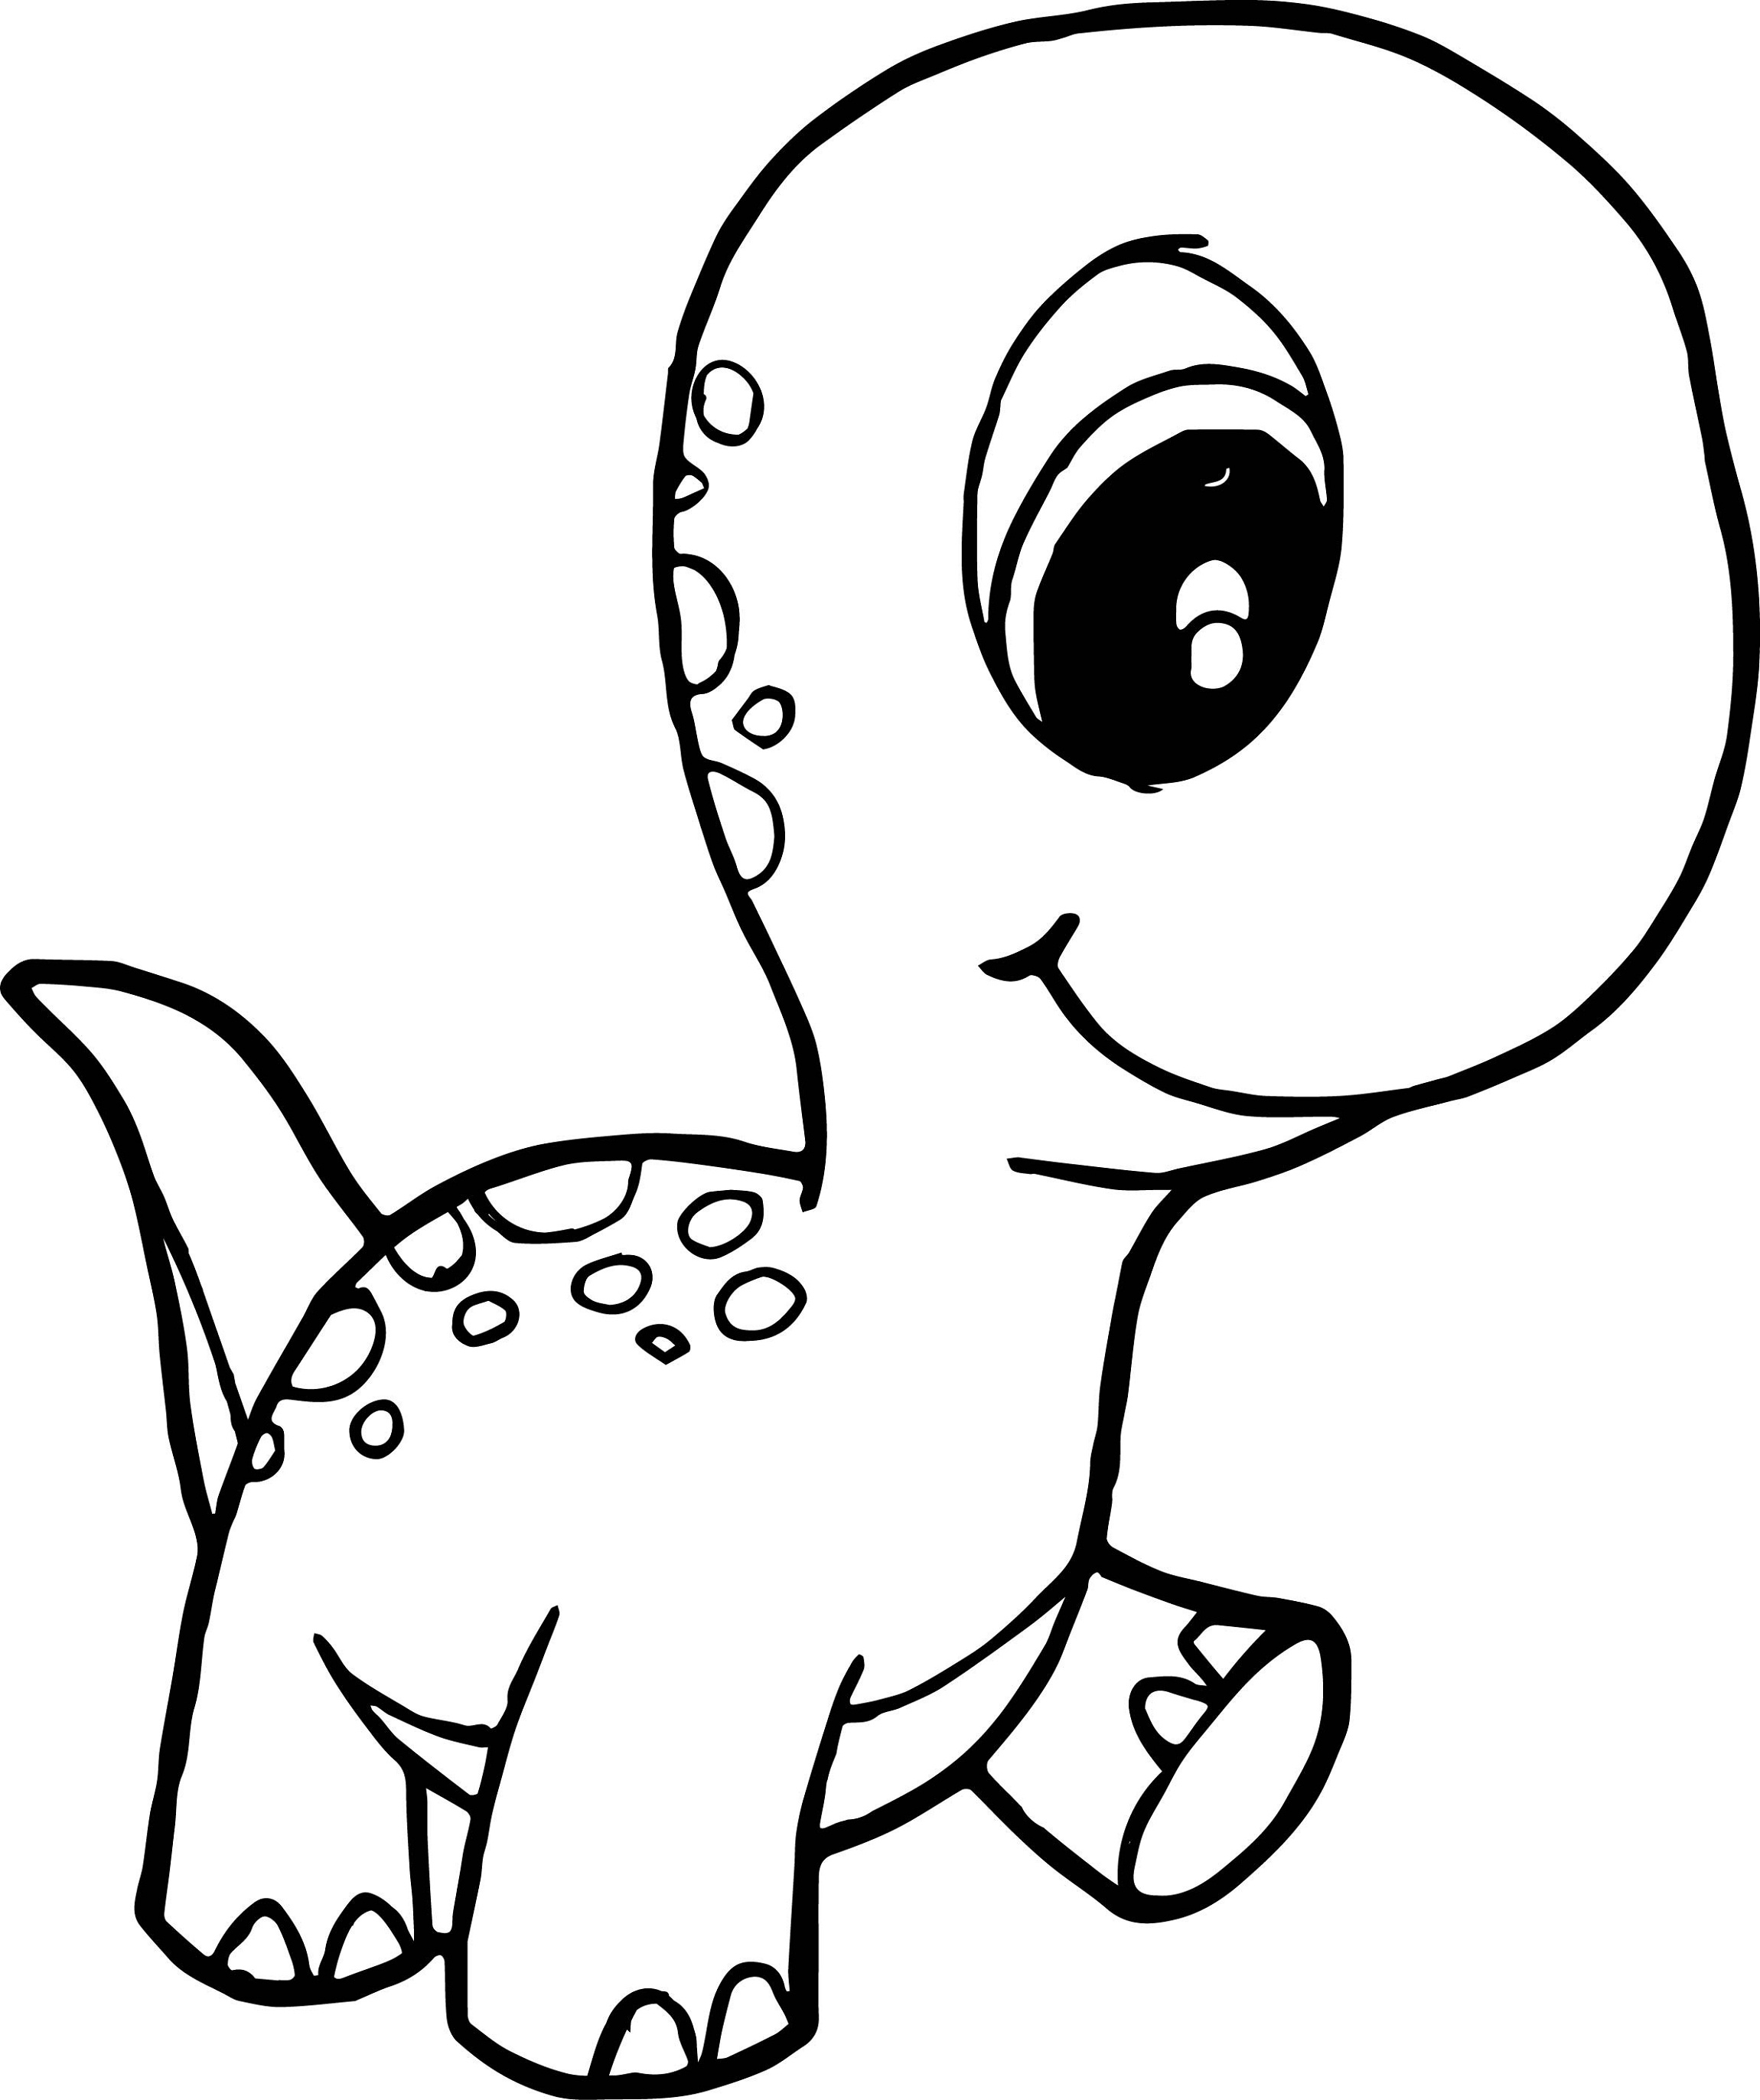 dinosaur colouring pictures to print t rex dinosaur coloring pages at getcoloringscom free print dinosaur pictures colouring to